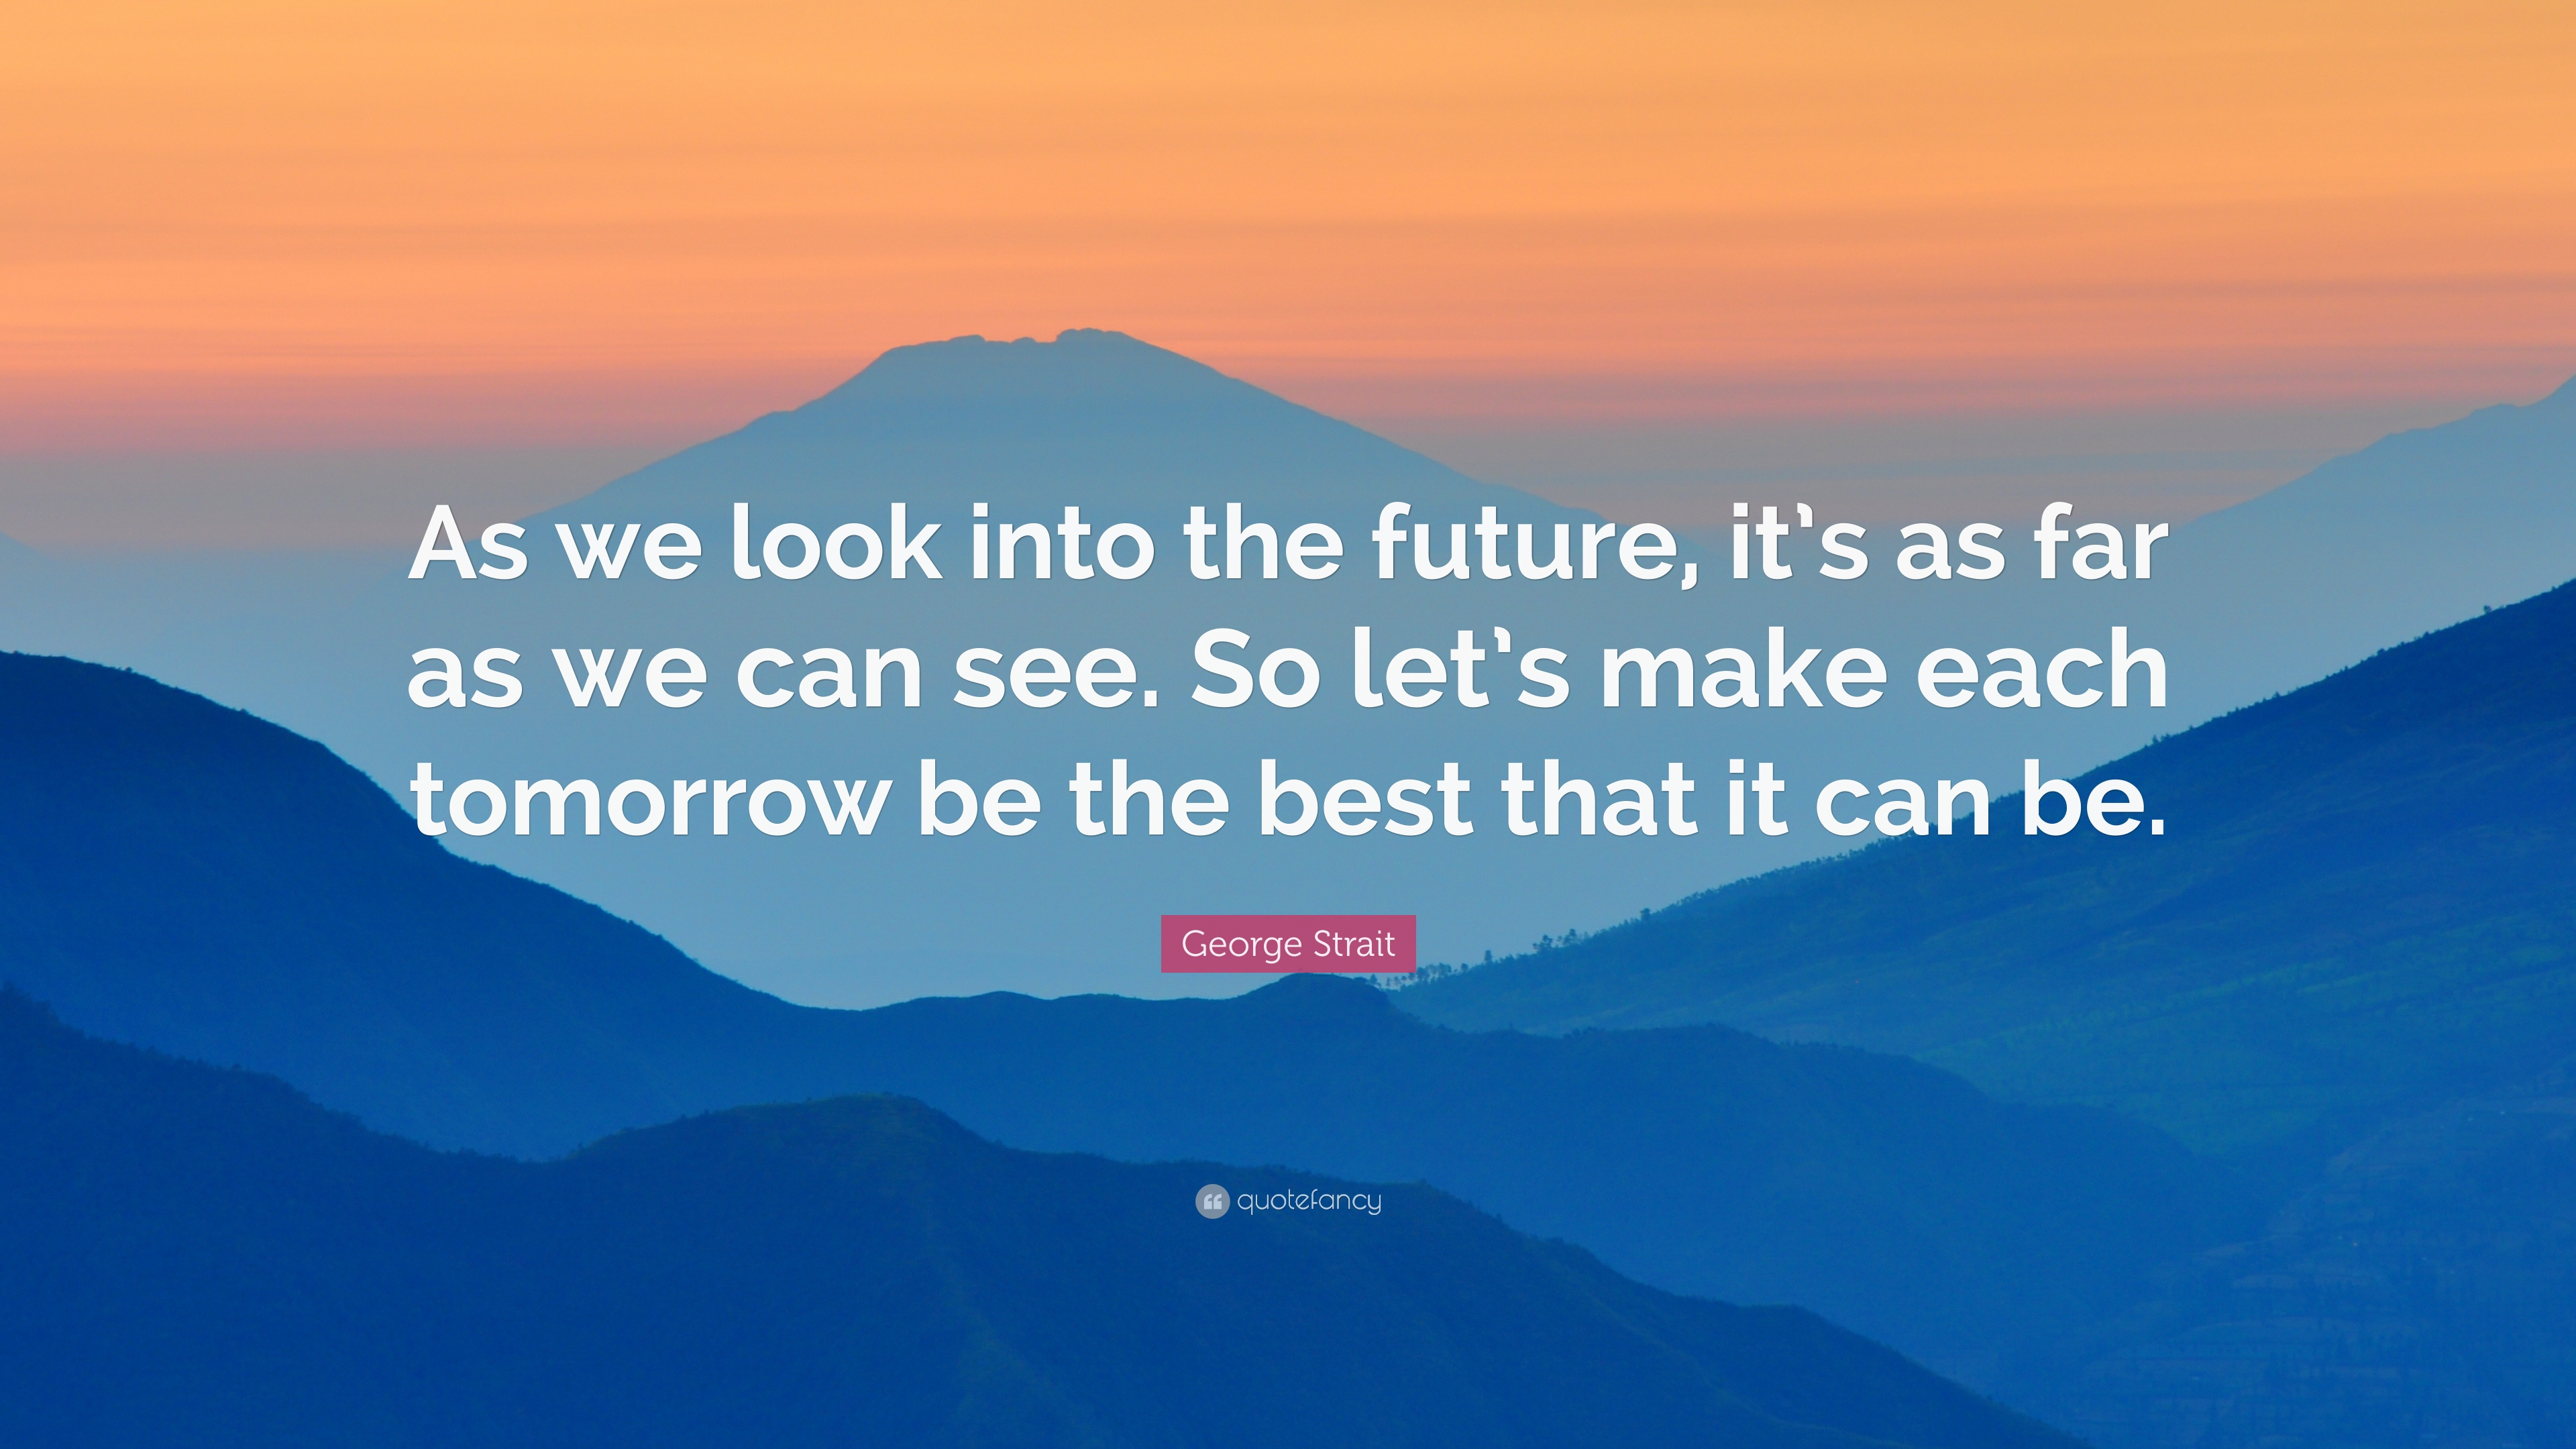 George Strait Quote As We Look Into The Future It S As Far As We